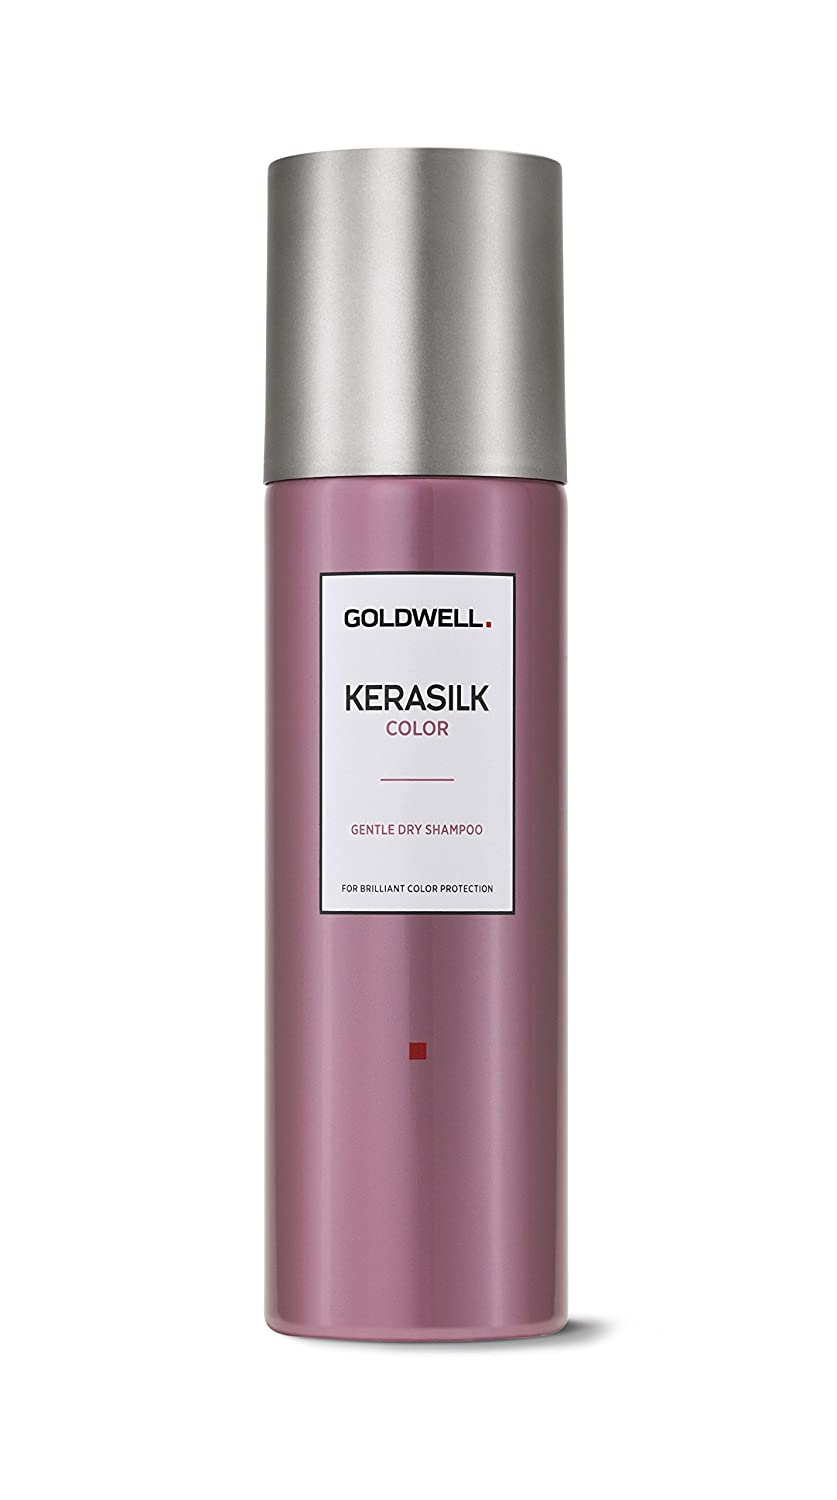 Goldwell Kera seta color sanftes secco Shampoo, 1er Pack (1 X 200 ML) 4021609652441